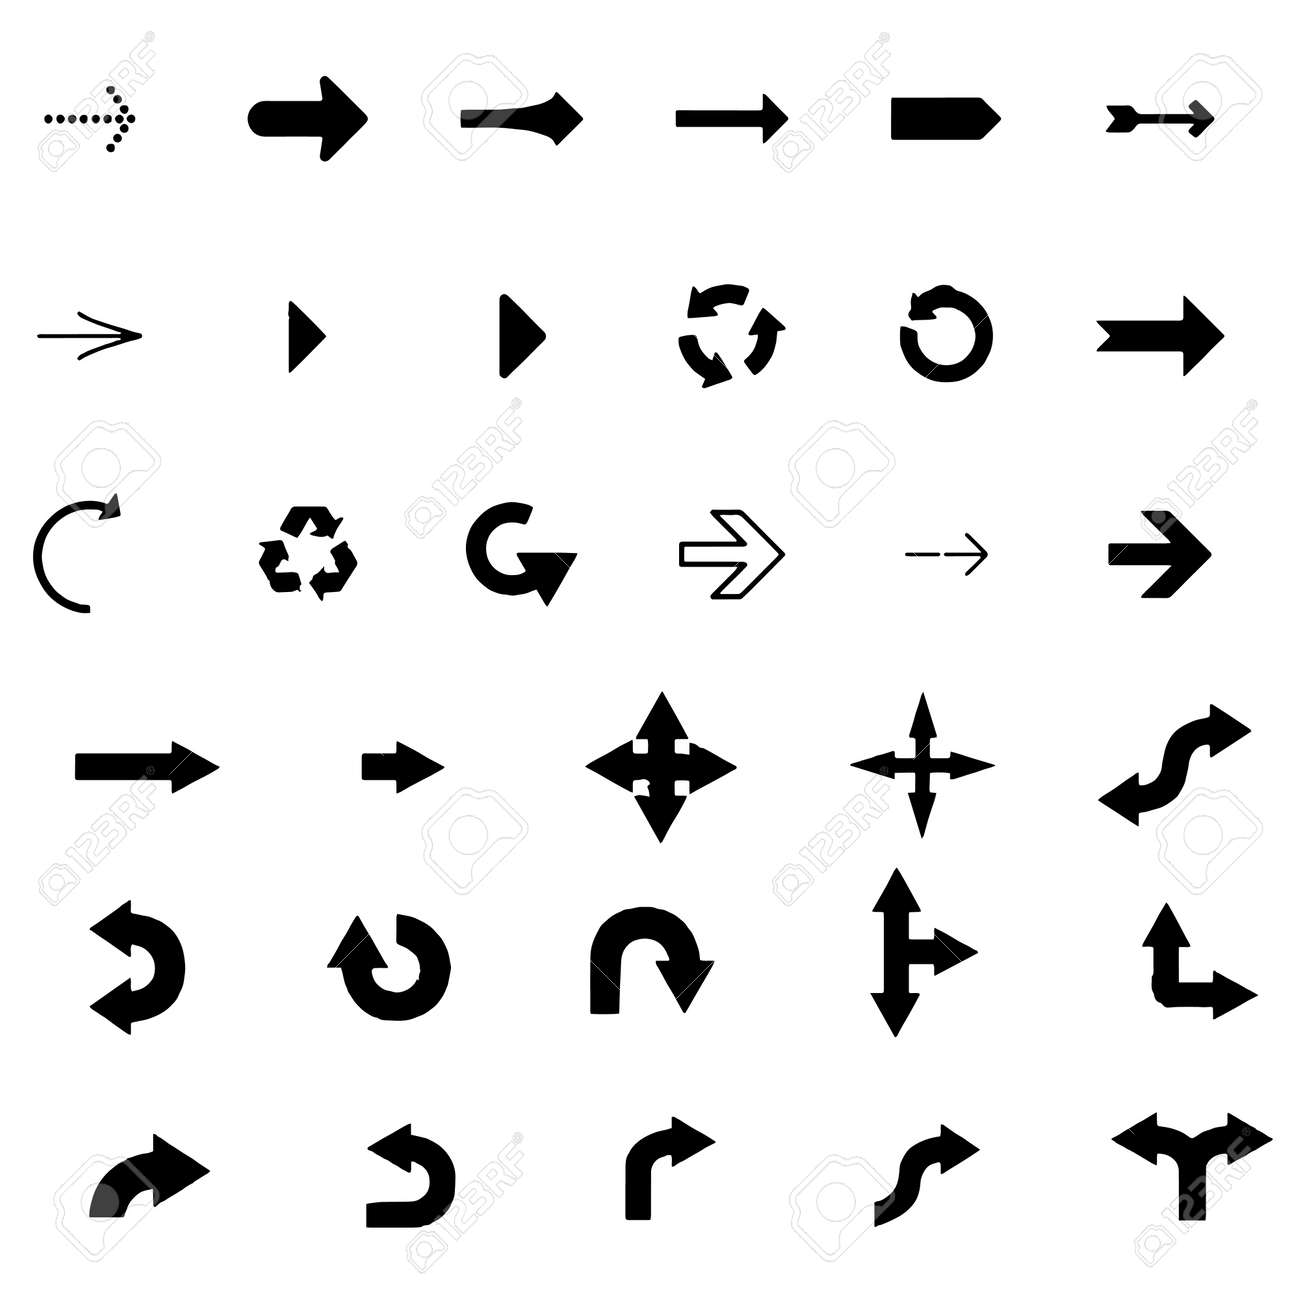 Arrows vector collection on a white background - 152029252